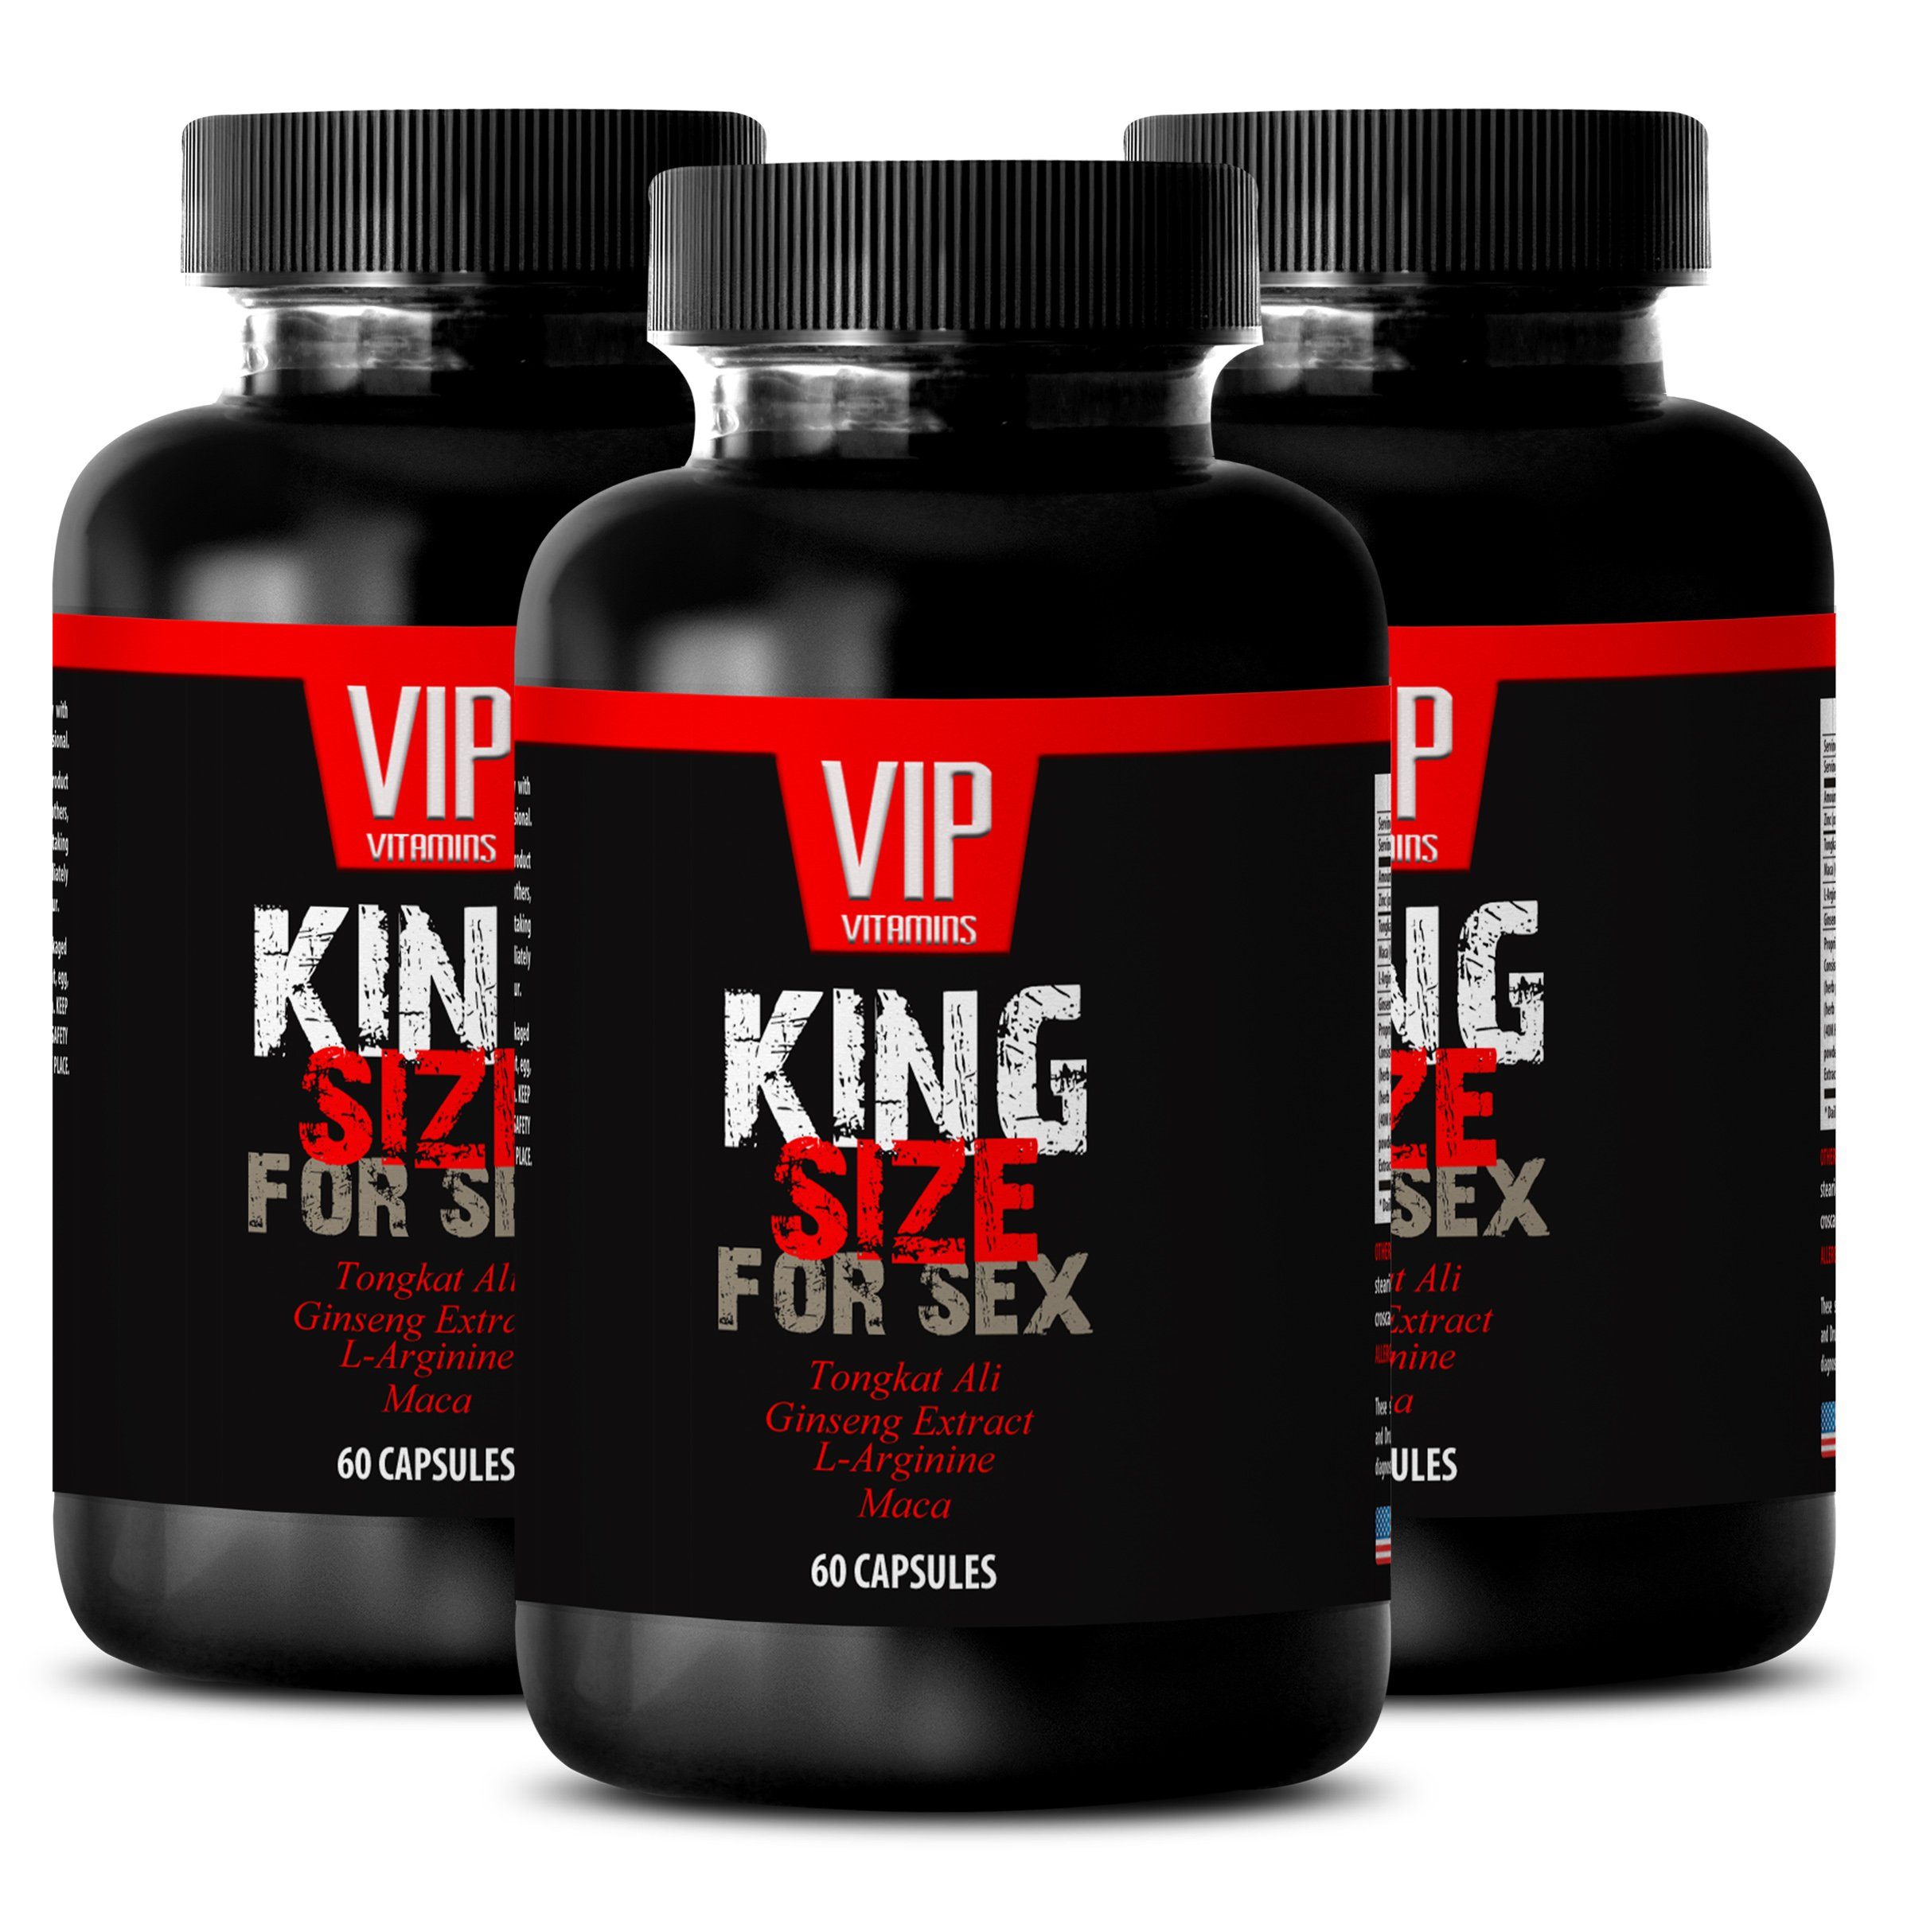 Korean ginseng powder - KING SIZE FOR SEX - Sexual desire pills (3 Bottles 180 Capsules)